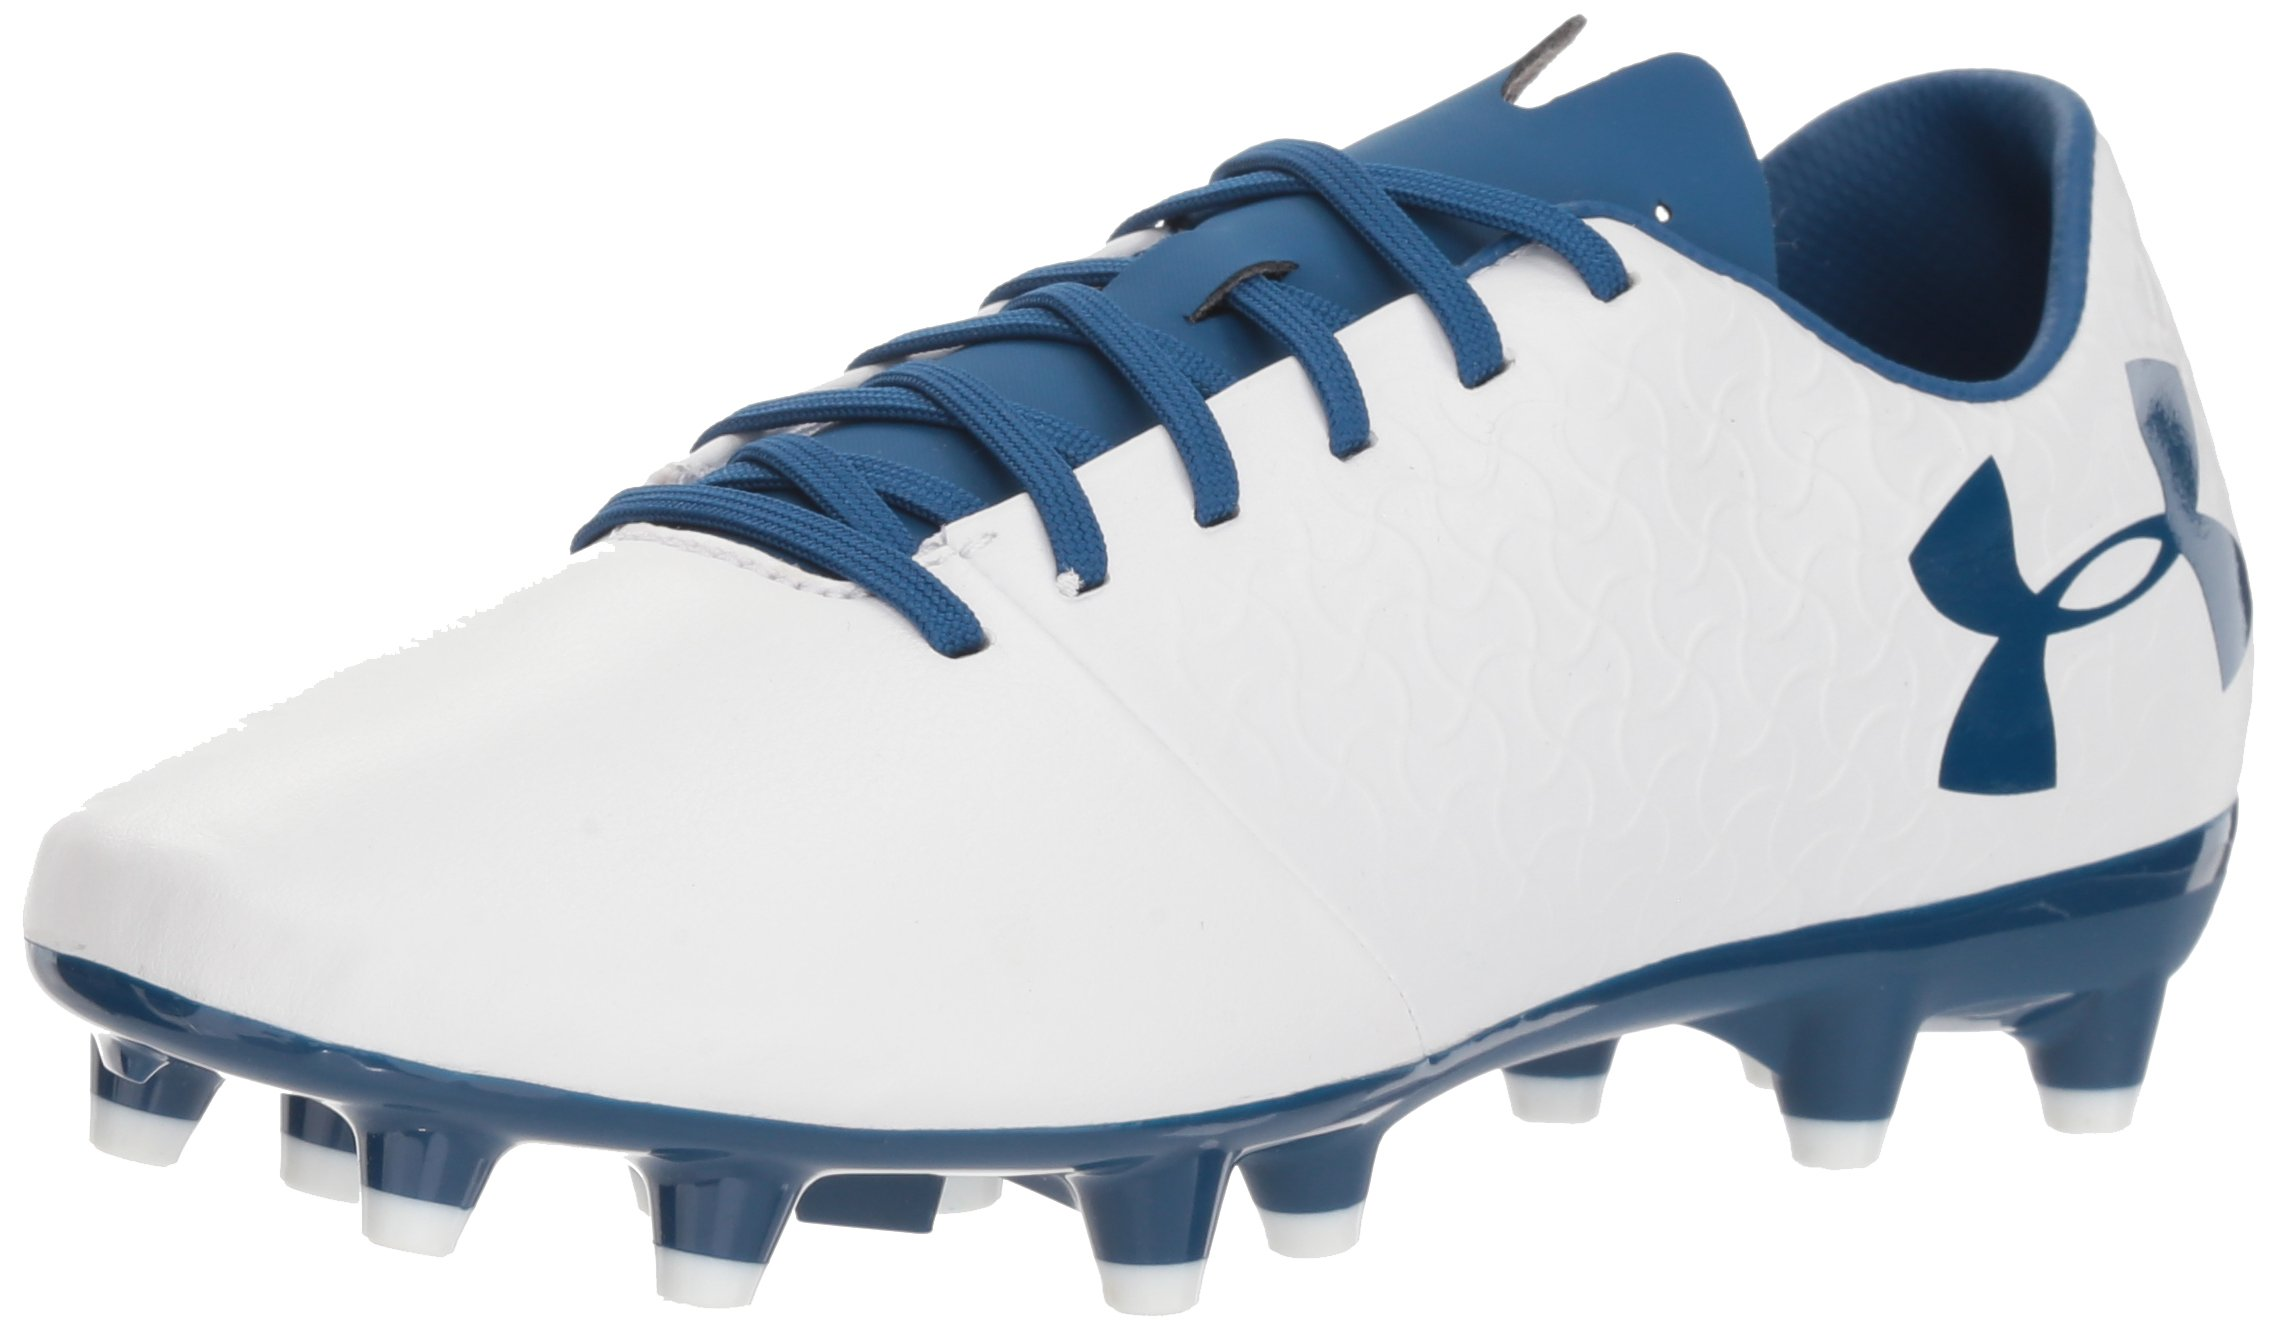 Under Armour Women's Magnetico Select FG Soccer Shoe, White (100)/Moroccan Blue, 9 by Under Armour